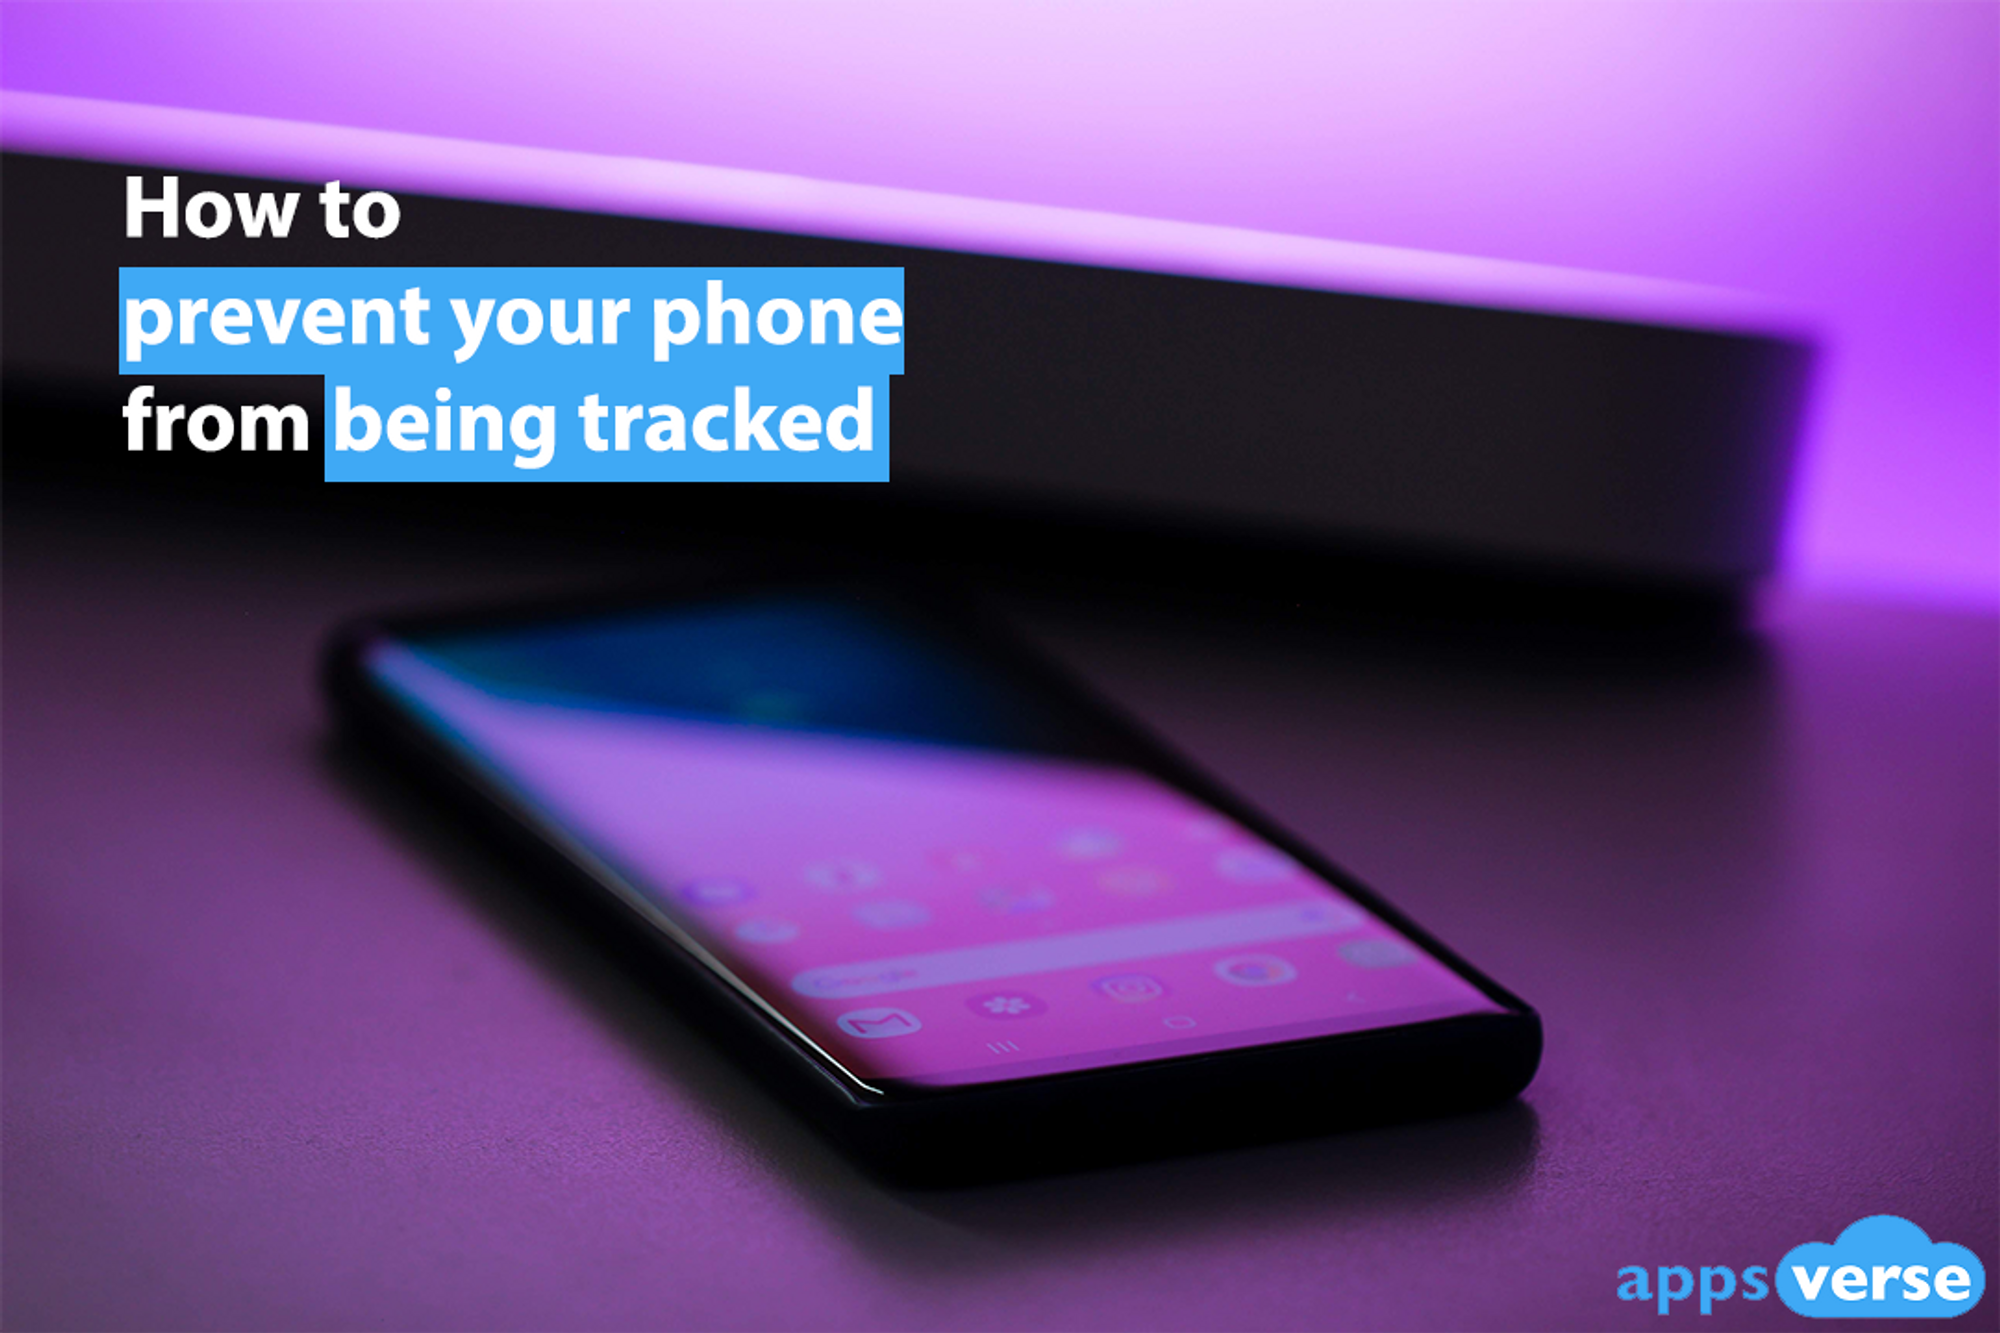 How to prevent your phone from being tracked